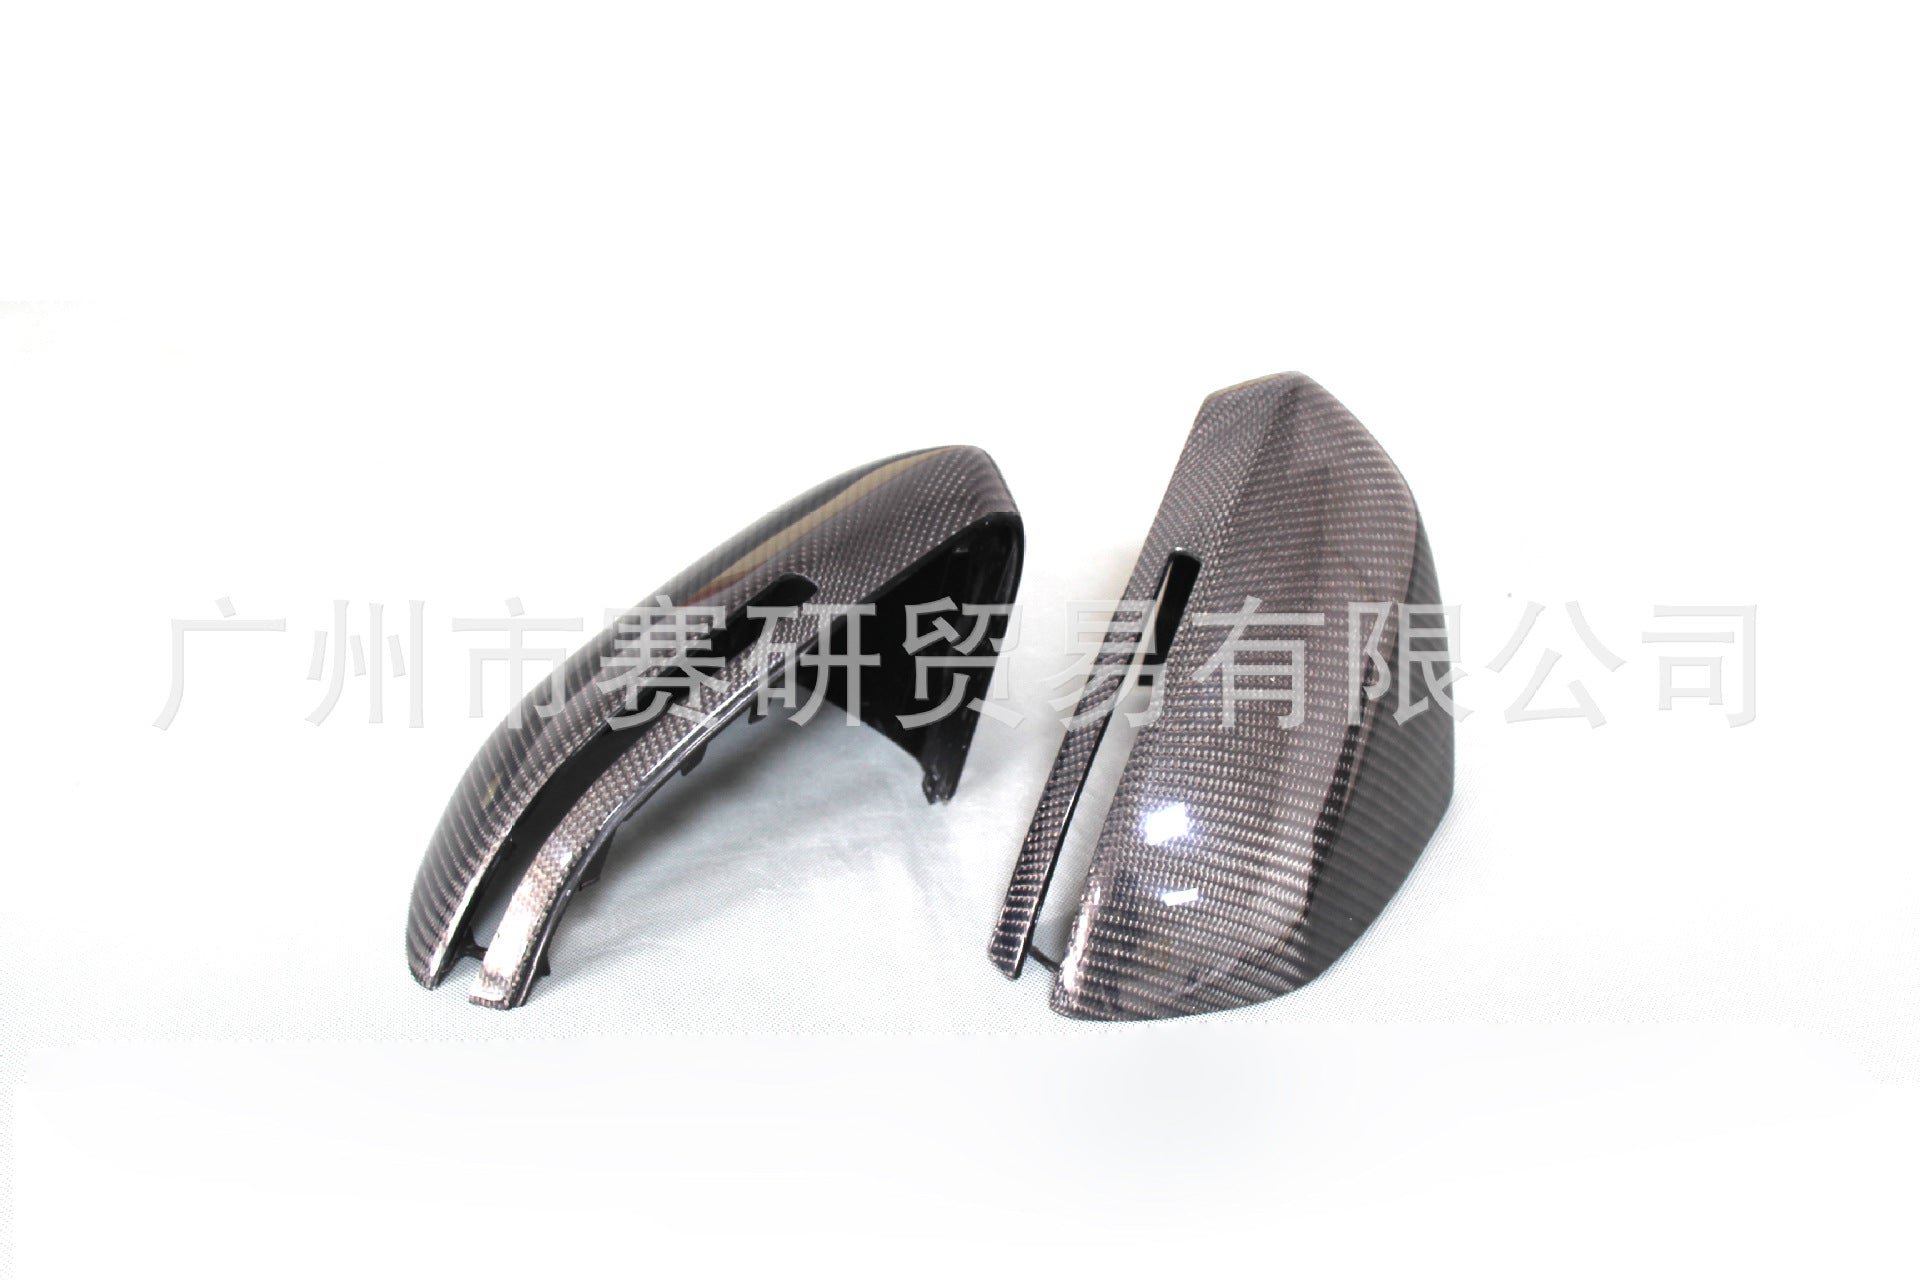 Applicable to Ford Taurus 2015-2016 replacement carbon fiber modified rearview mirror cover factory direct